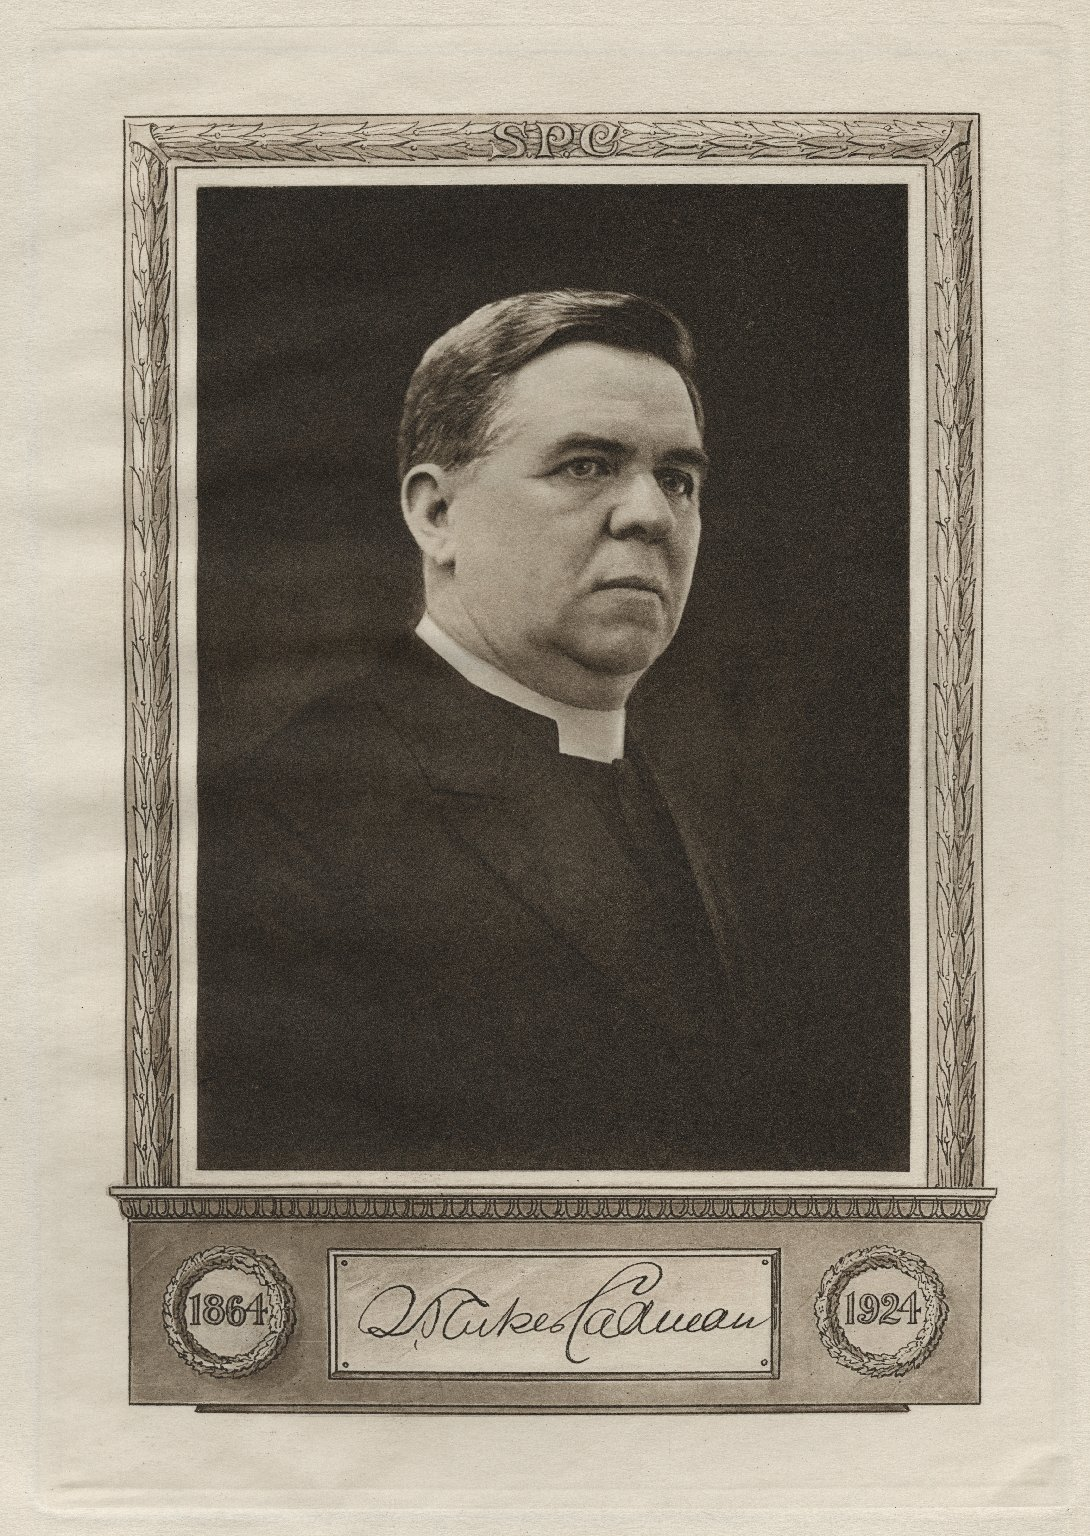 [Program of the] Testimonial dinner tendered Rev. S. Parkes Cadman, D.D. : in honor of the sixtieth anniversary of his birth ...